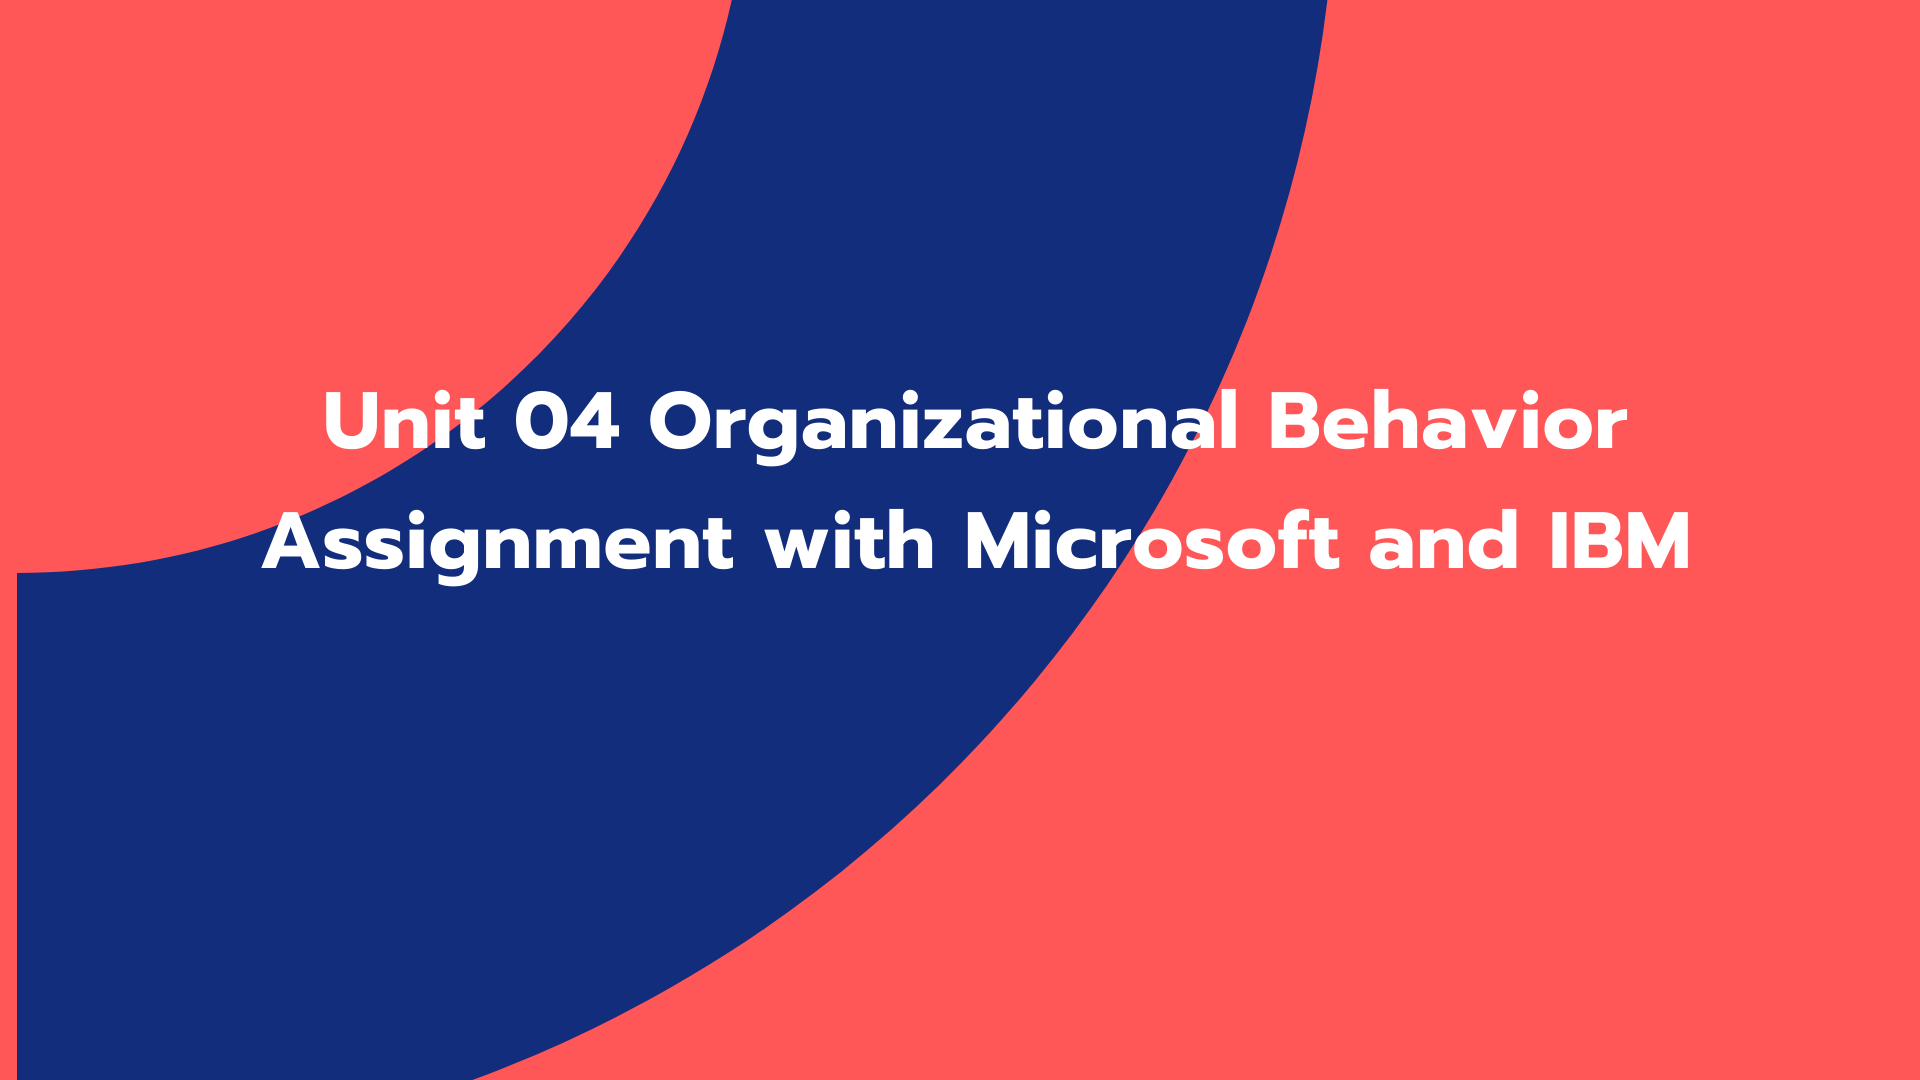 Unit 04 Organizational Behavior Assignment with Microsoft and IBM